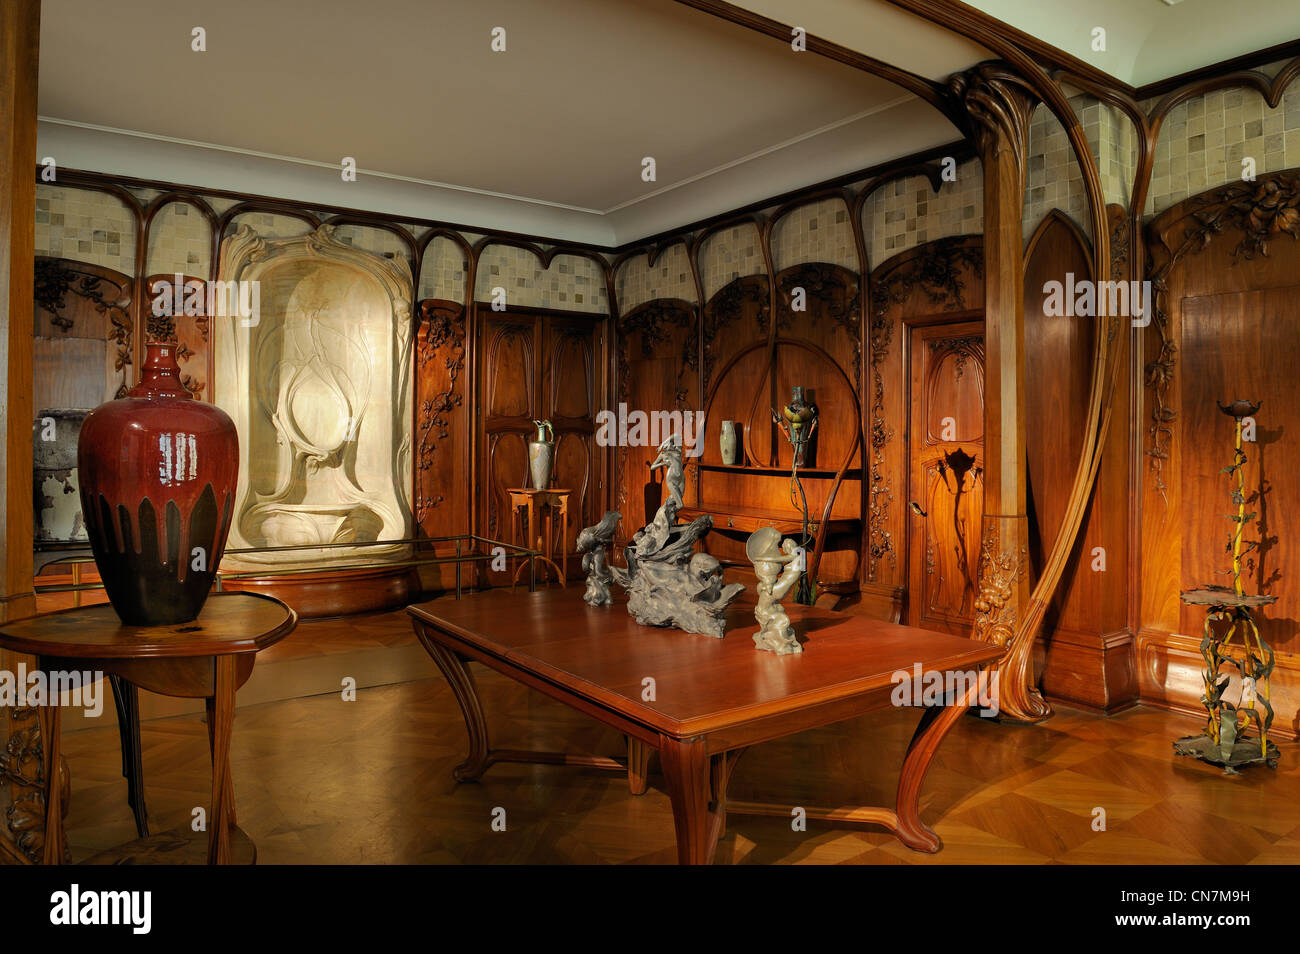 Art nouveau style furniture - France Paris The Orsay Museum Dining Room In Art Nouveau Style Of The